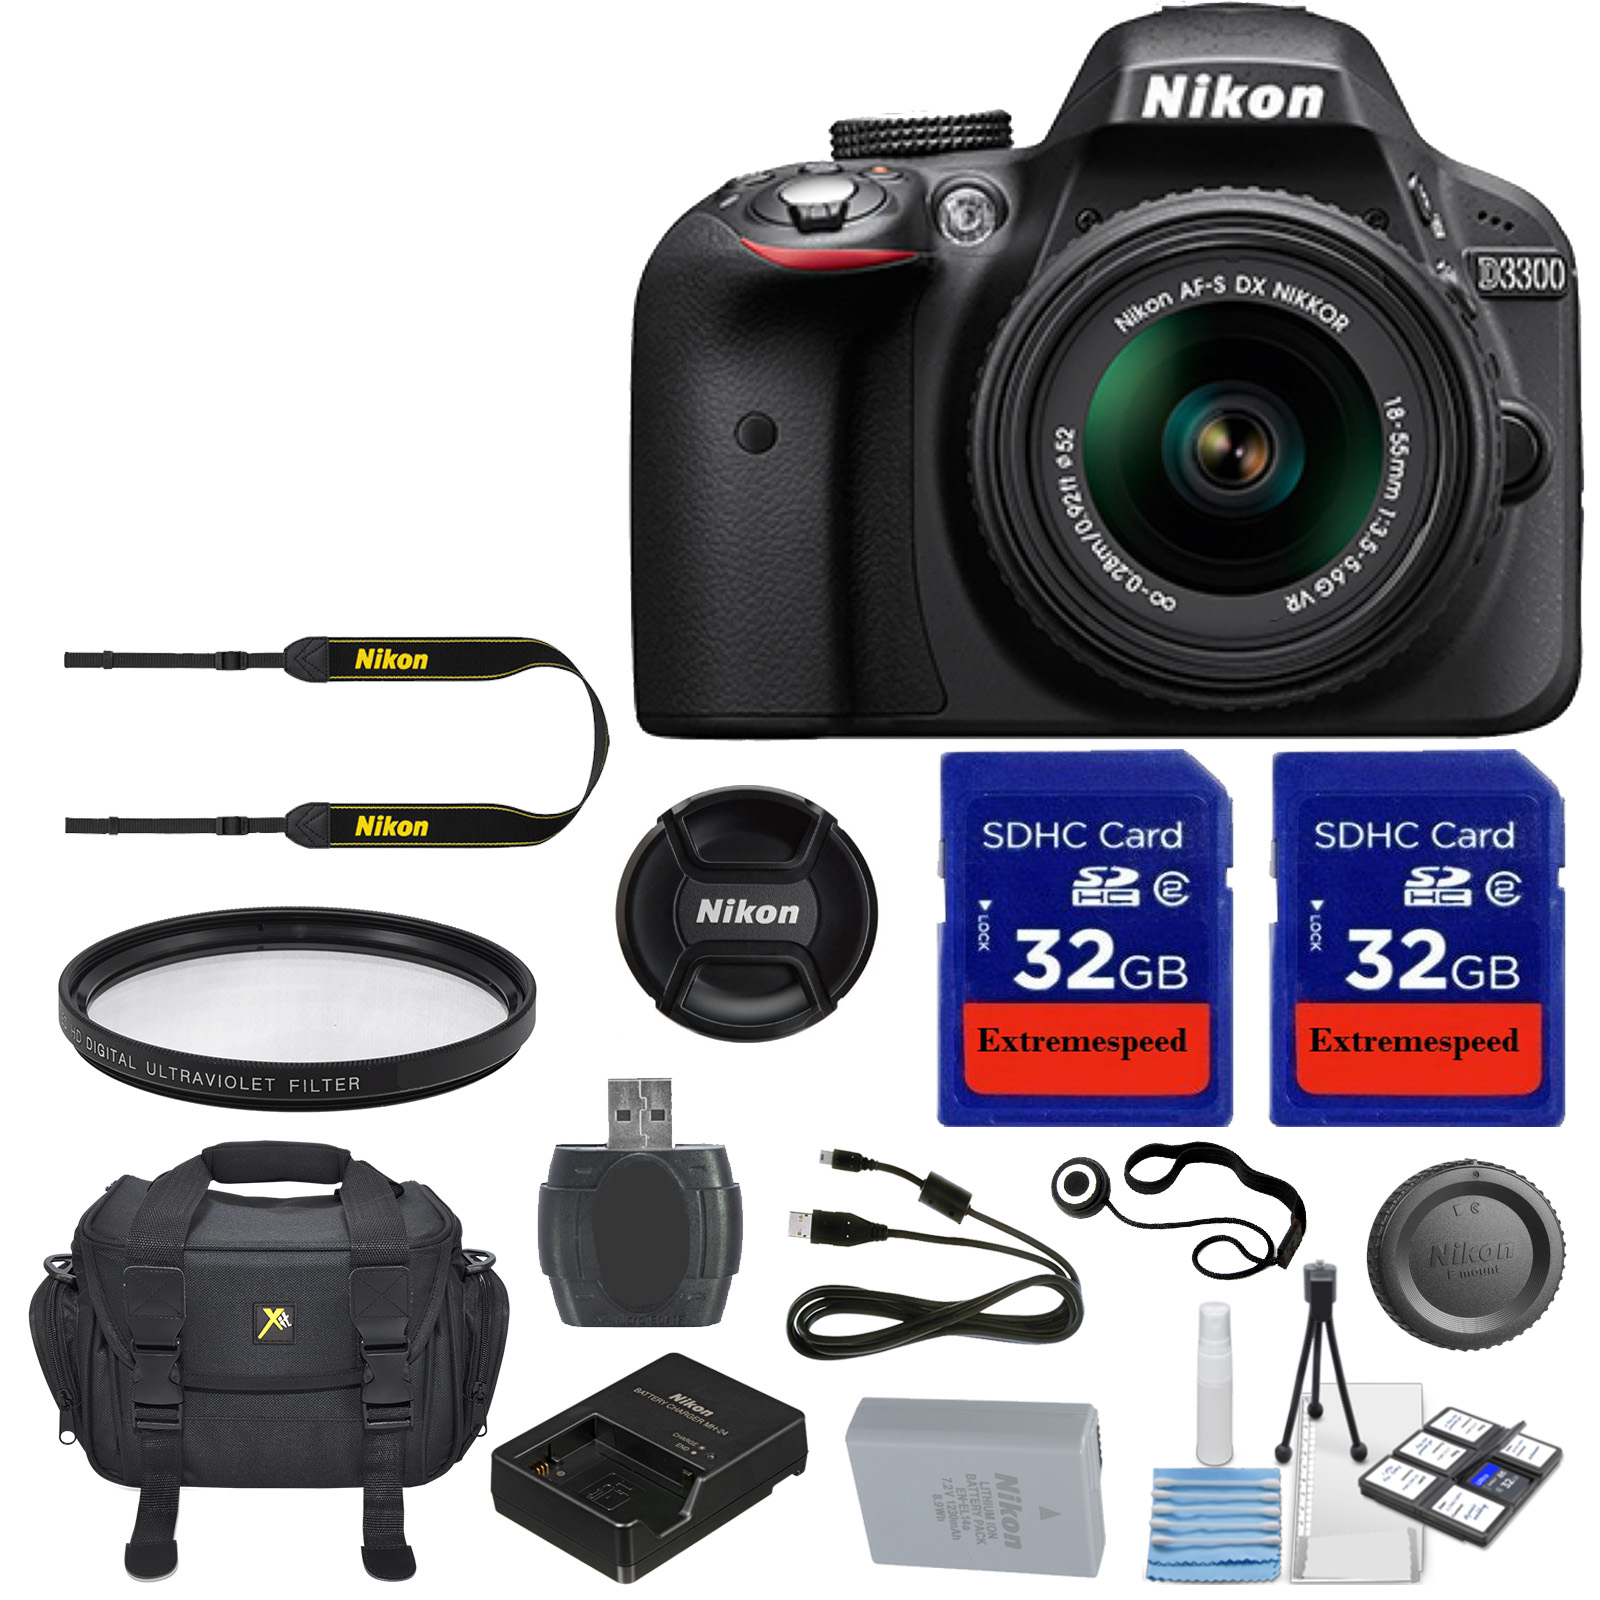 Nikon D3300 DSLR Digital SLR Camera Body + 18-55mm VR Lens + 2 Pieces 32GB  High Speed SDHC Memory Cards + 52mm High Definition UV Filter and More